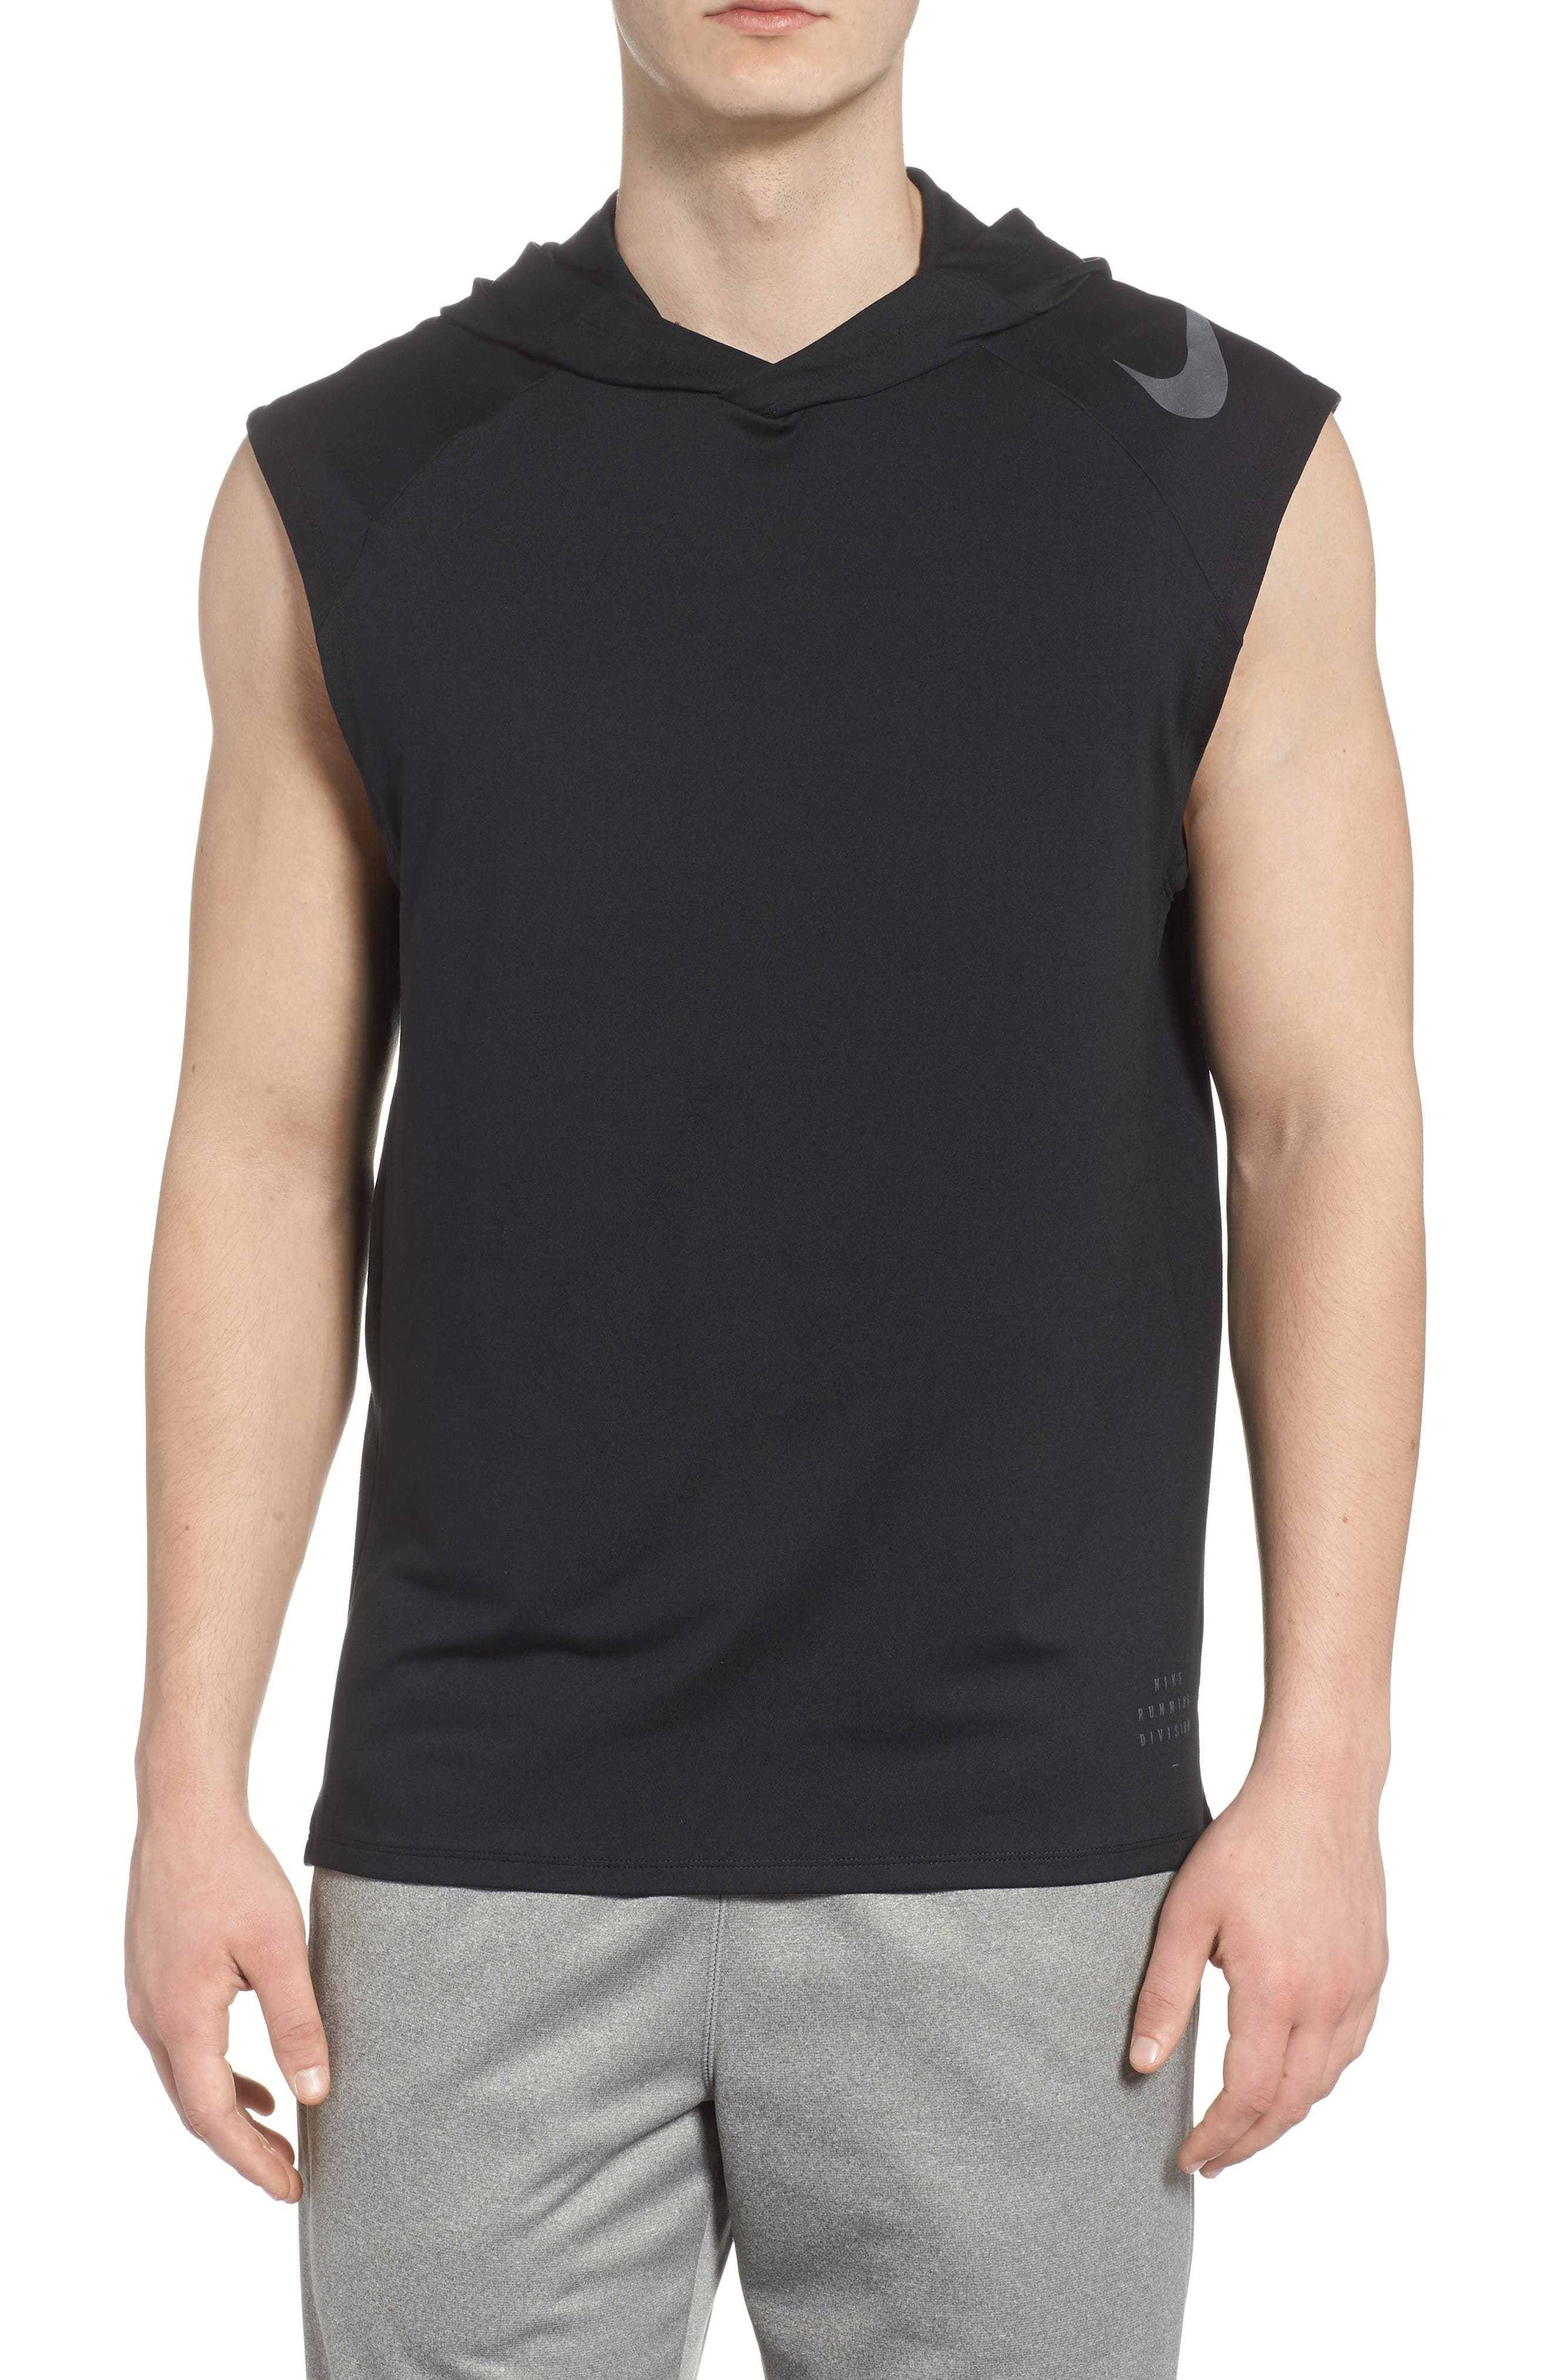 Dry Element Sleeveless Hoodie,                             Main thumbnail 1, color,                             BLACK